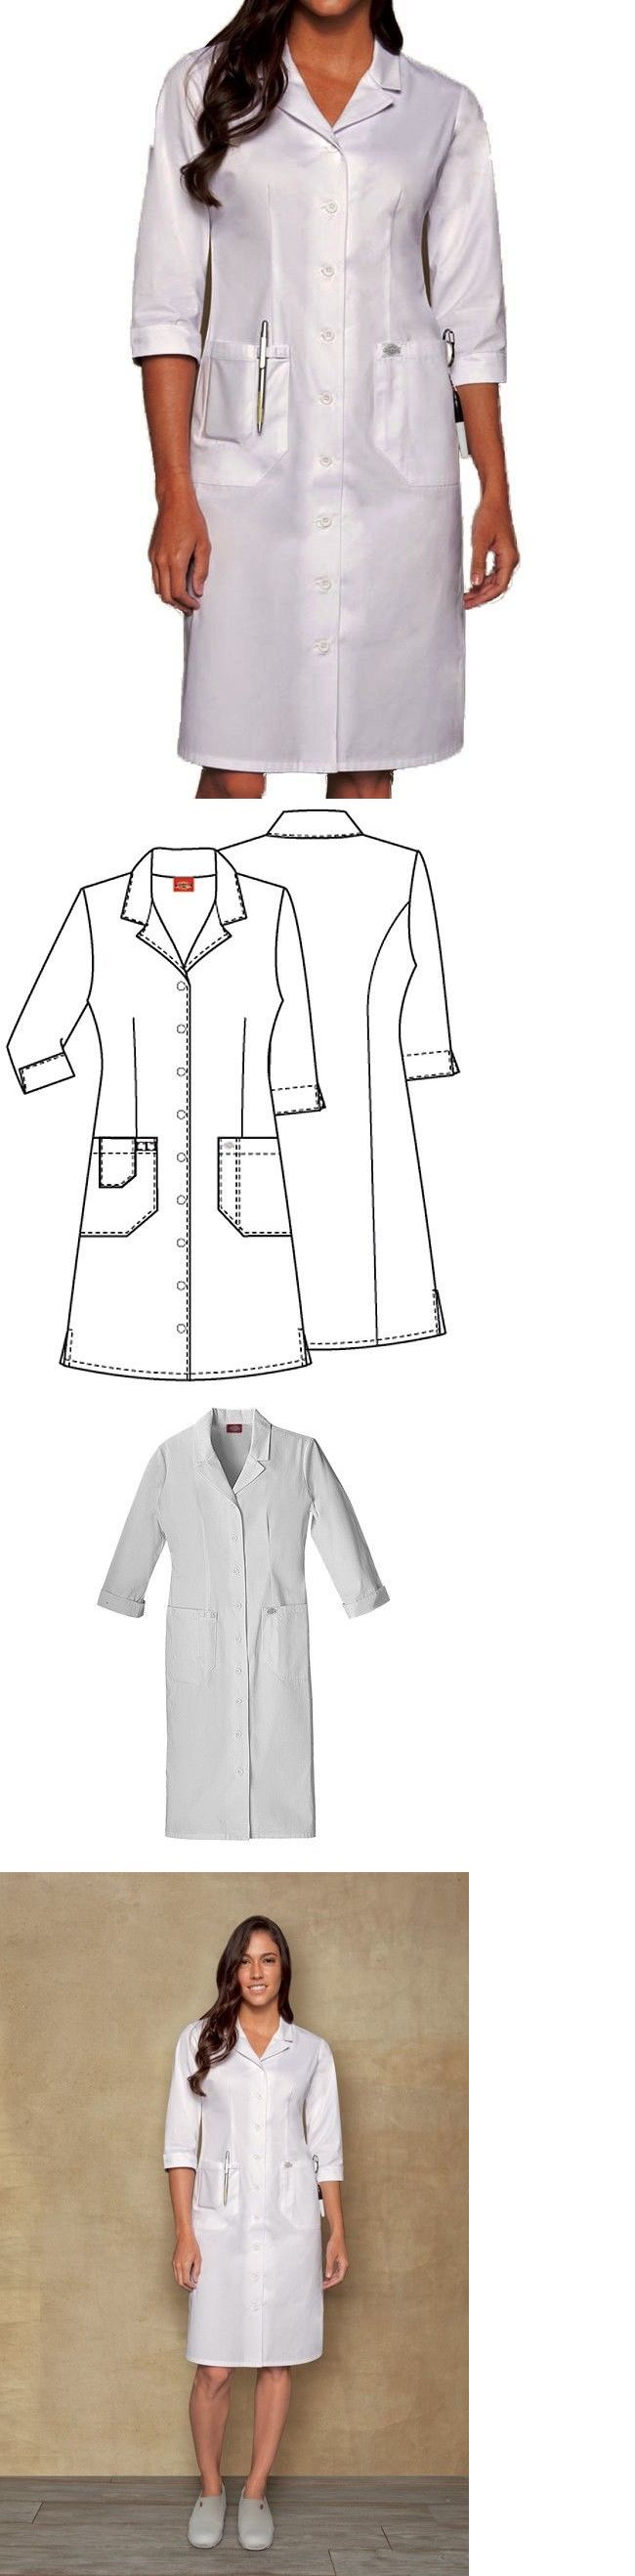 Tops 105440: Dickies 84503 Front Button White Scrub Dress Nurses, Usher, Student - Nwt -> BUY IT NOW ONLY: $32.98 on eBay!